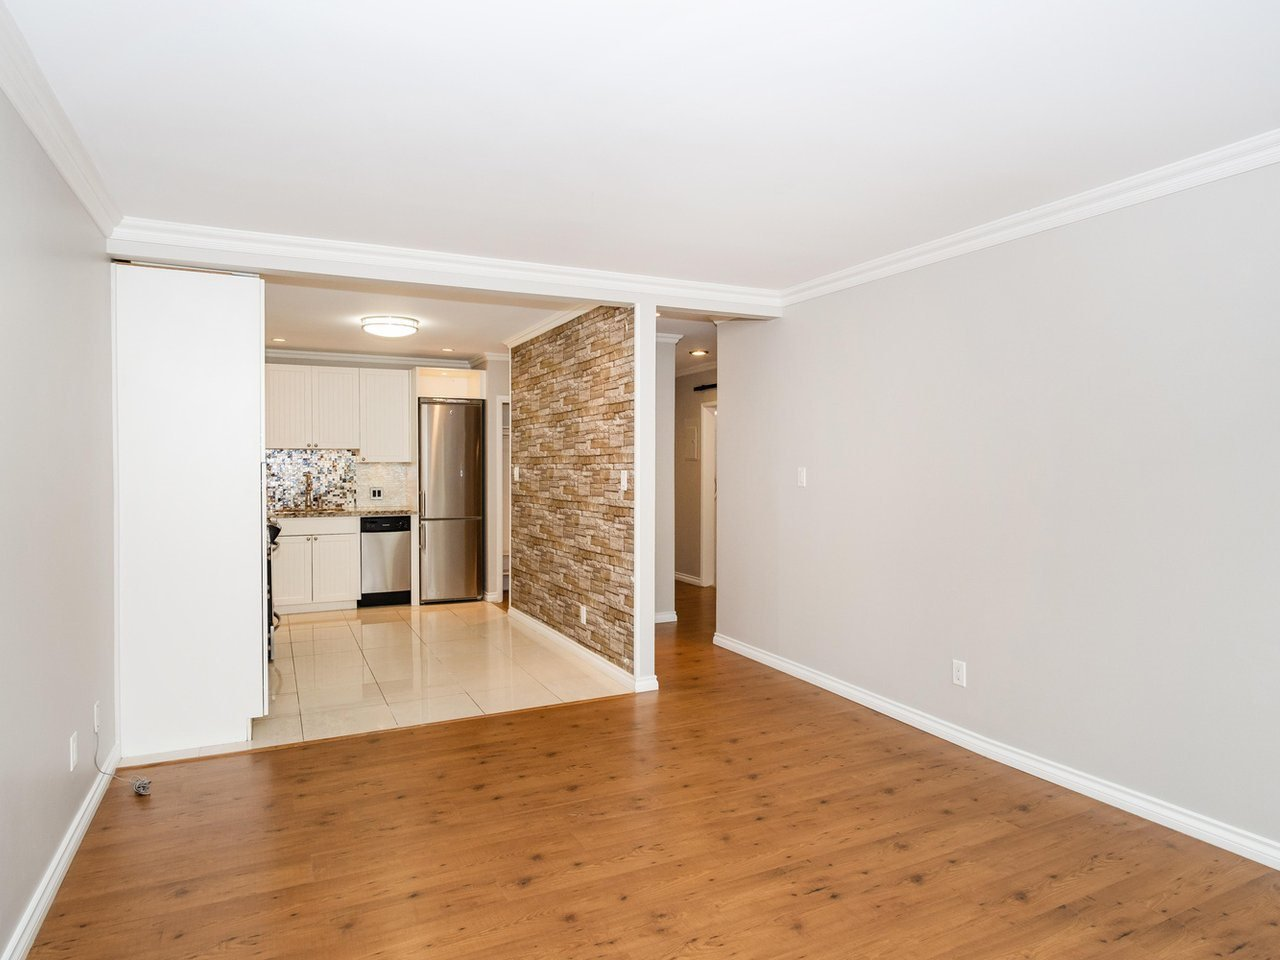 "Photo 4: Photos: 113 8680 FREMLIN Street in Vancouver: Marpole Condo for sale in ""COLONIAL ARMS"" (Vancouver West)  : MLS®# R2416429"